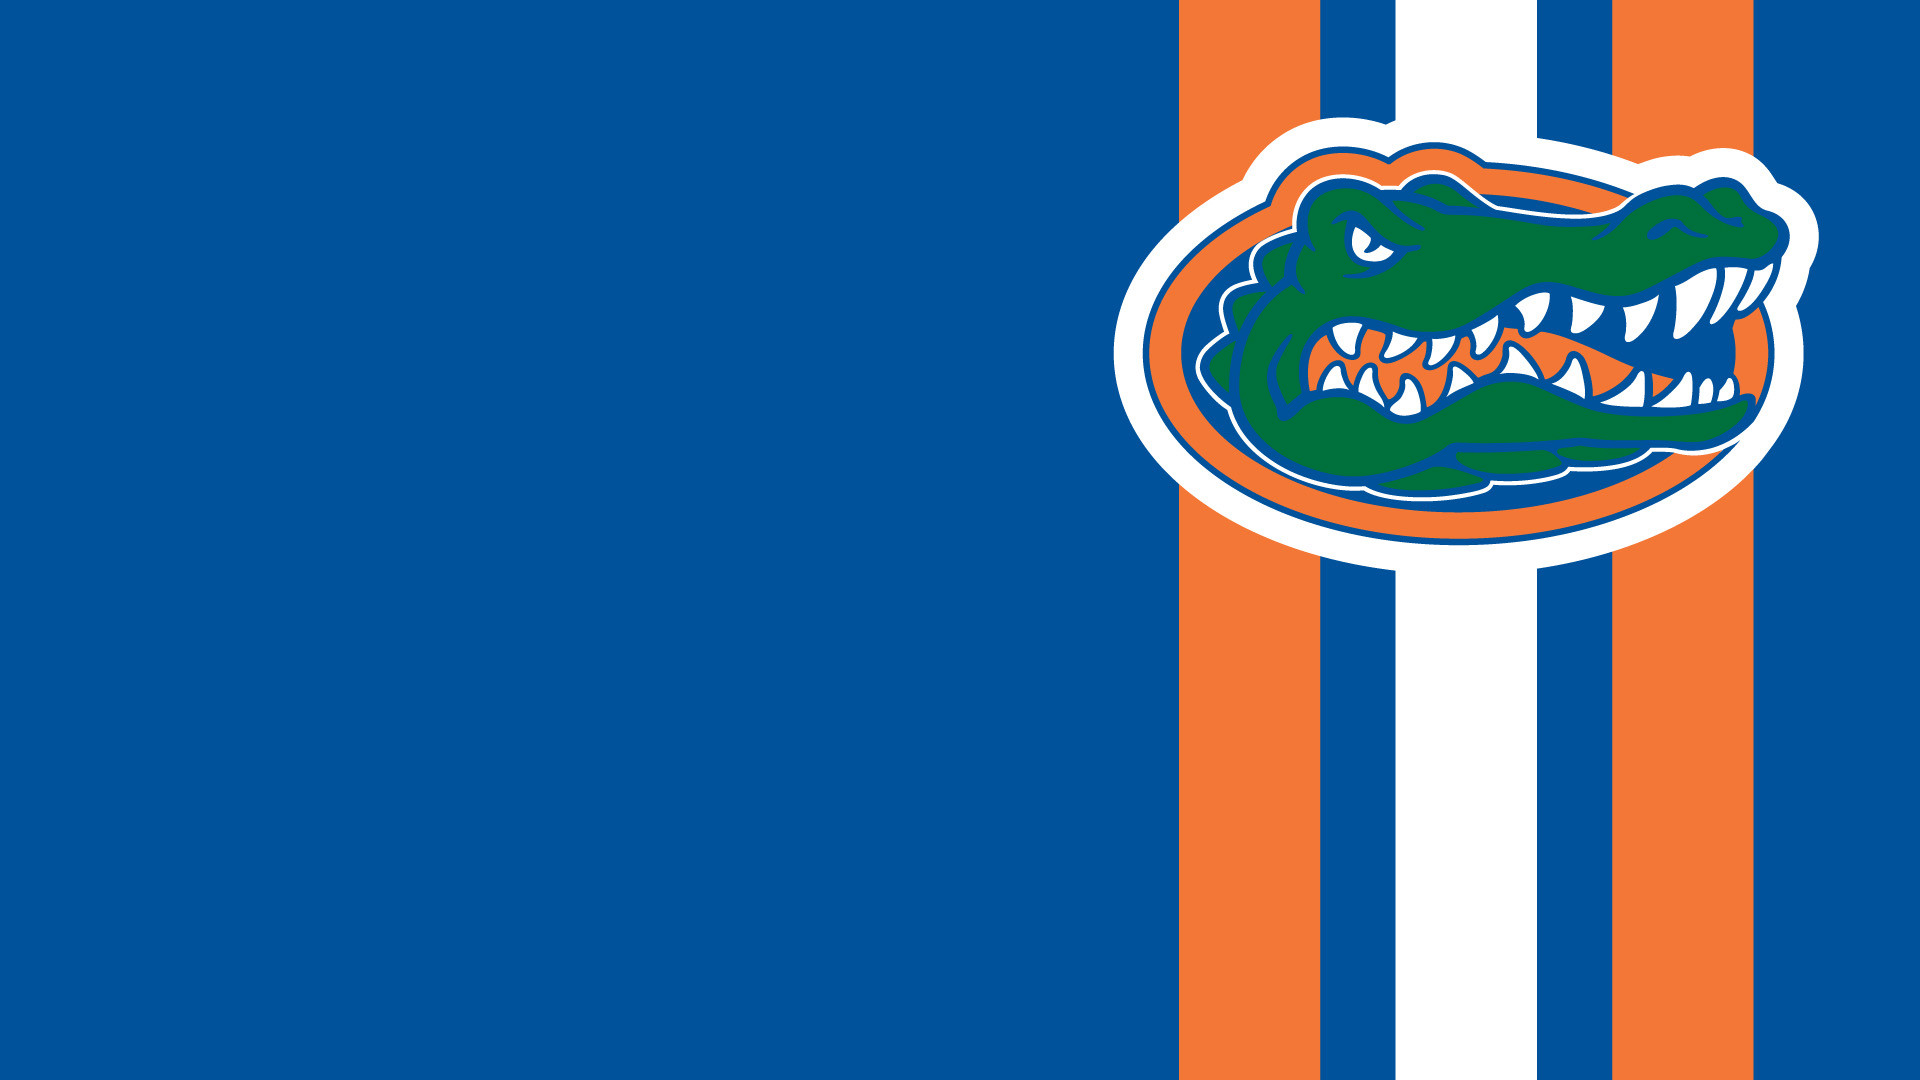 2560x1600 Florida Gators Wallpaper